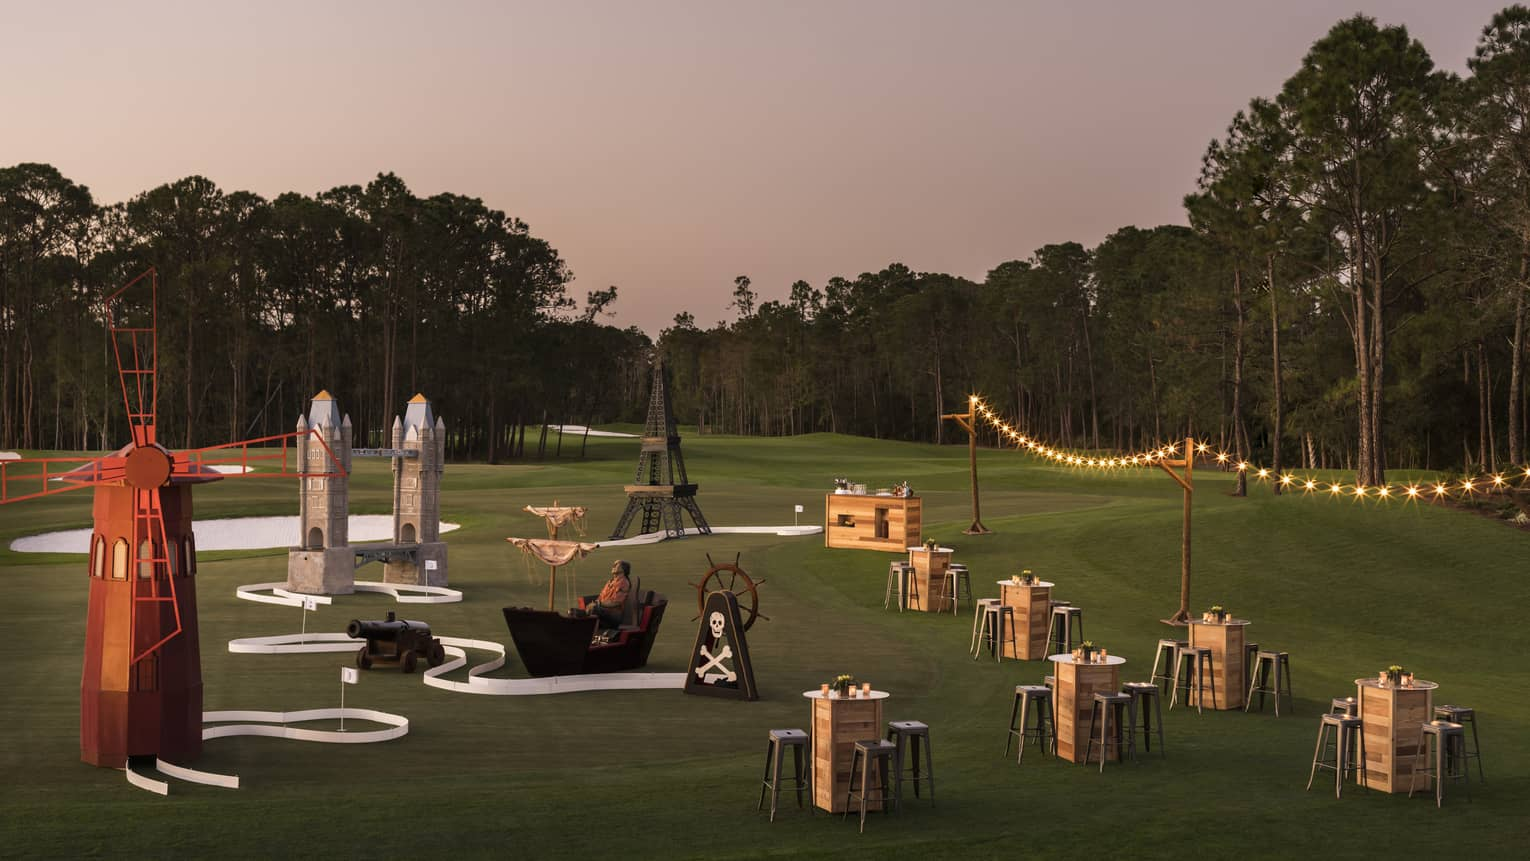 The sun sets over a golf course that's set up with stringed lights and cocktail tables for a putt putt event